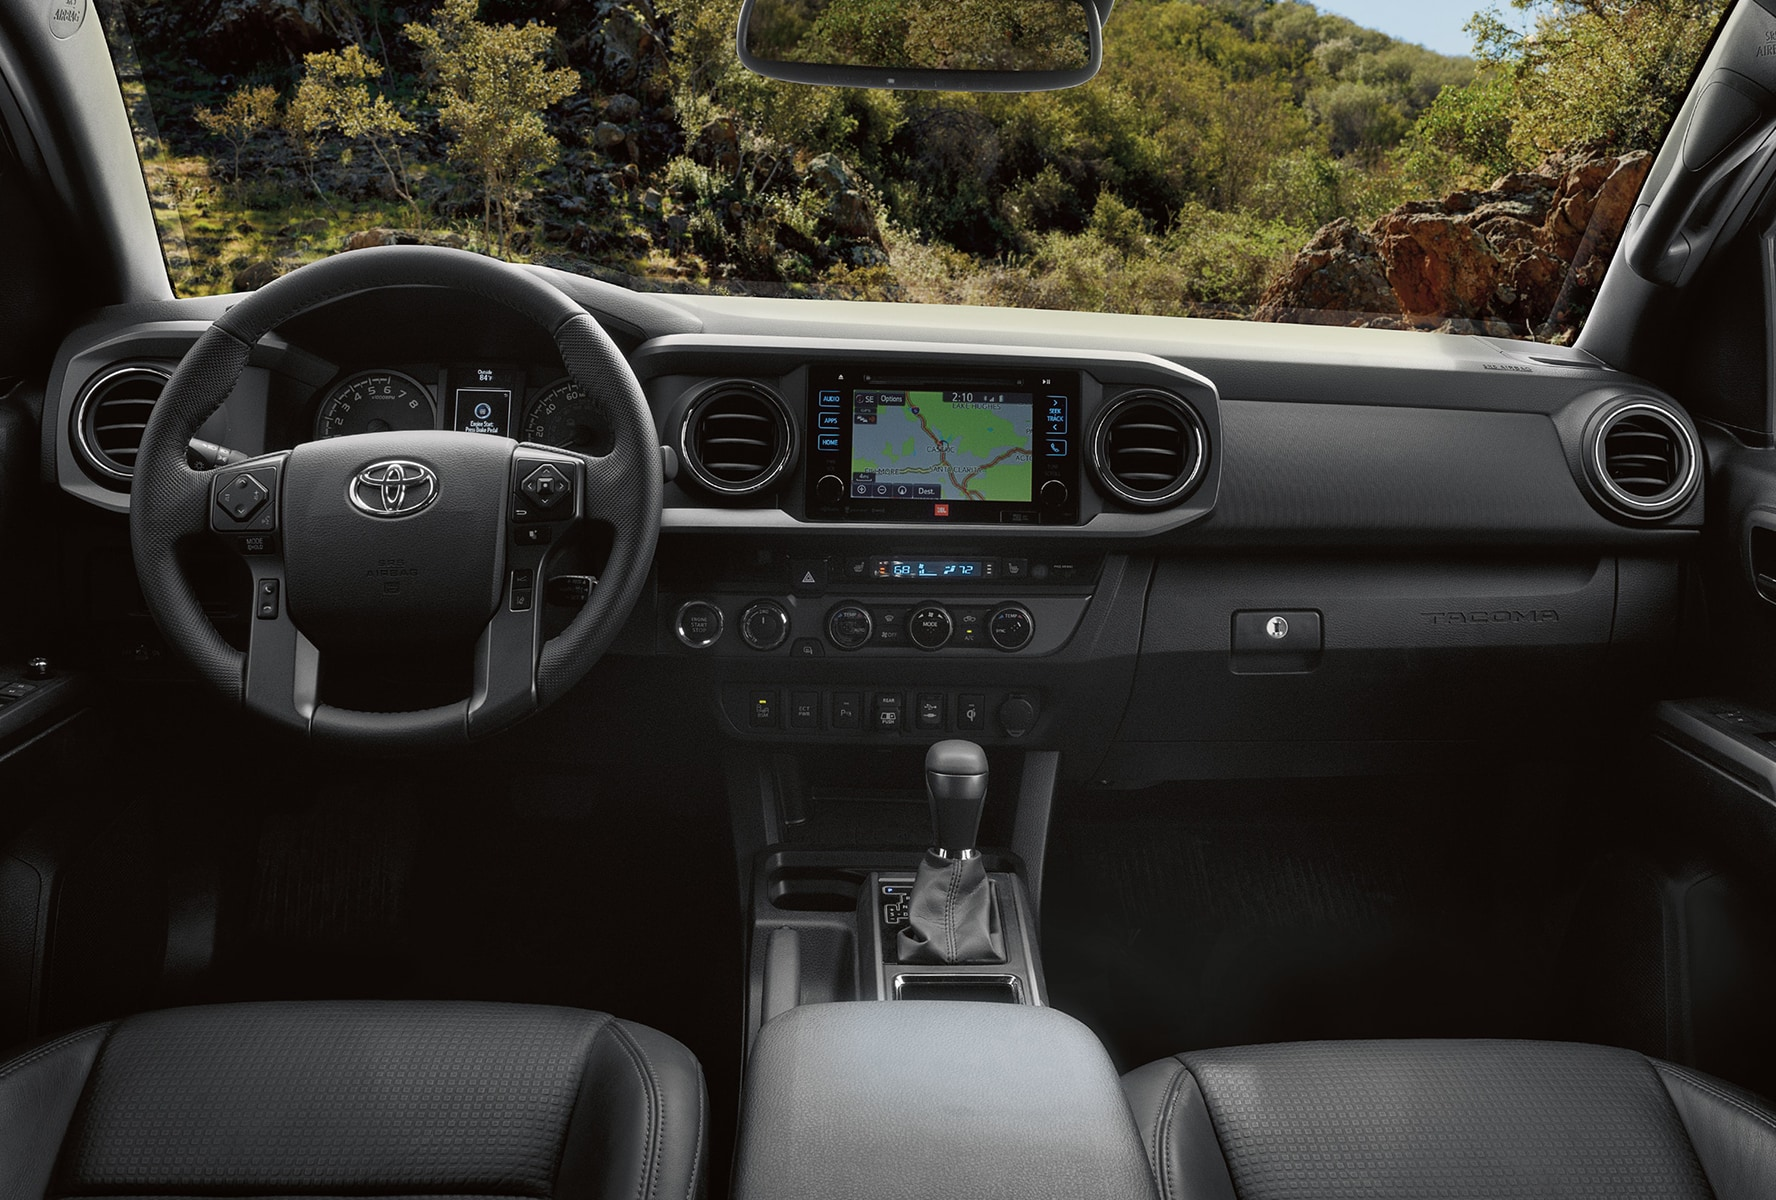 2019 Toyota Tacoma technology near Cincinnati, OH